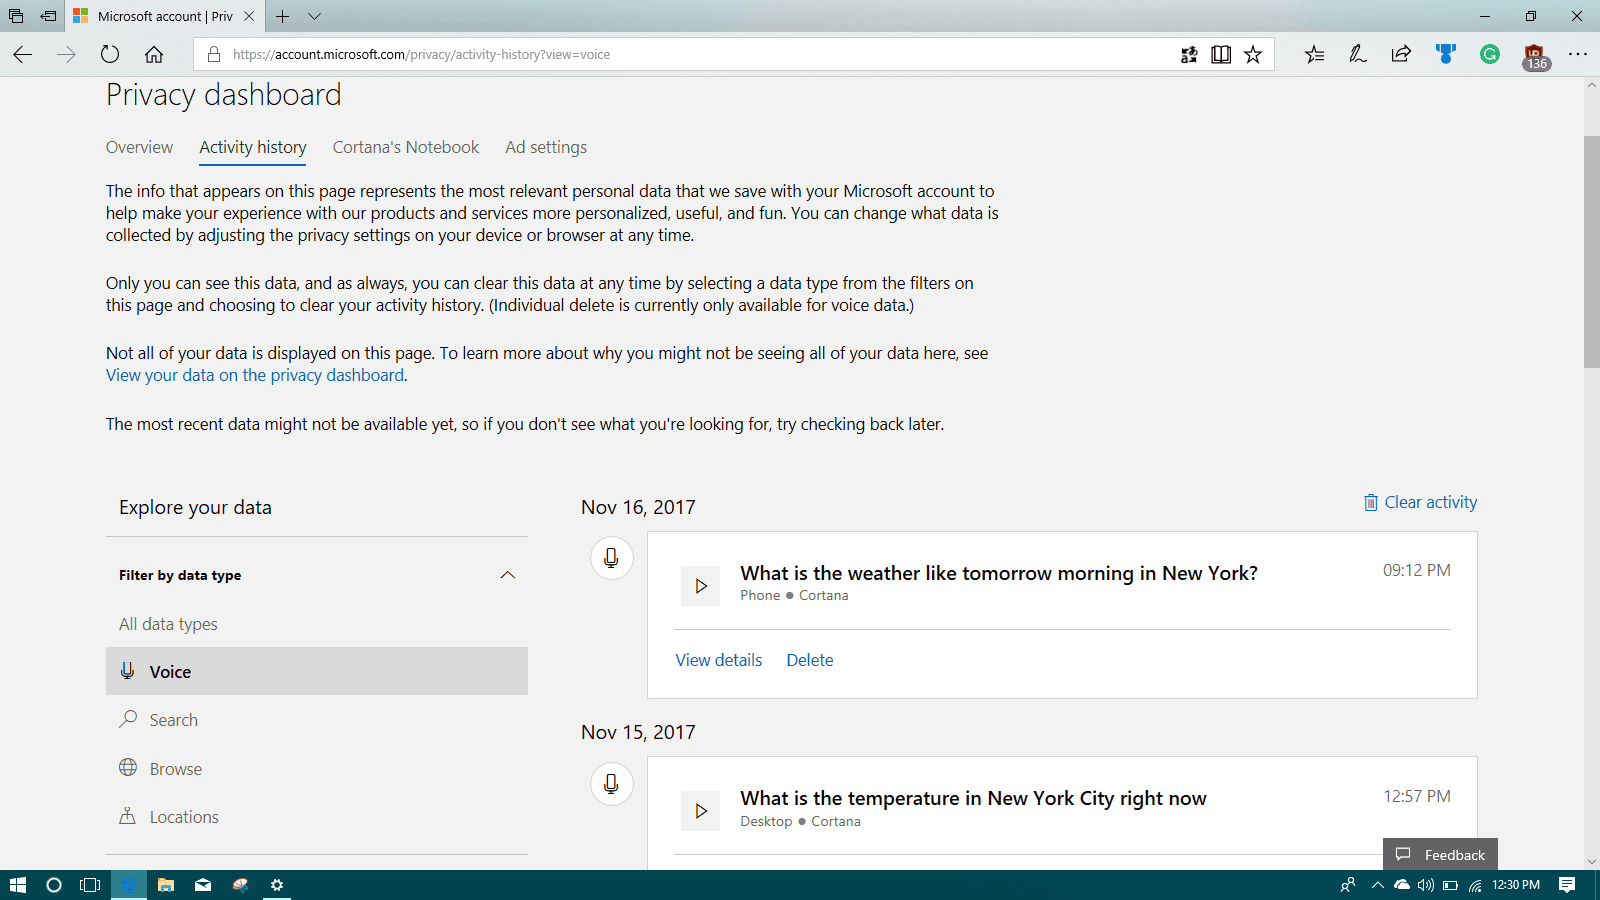 Latest Windows 10 Insider build 17040 includes Windows Timeline features OnMSFT.com November 20, 2017